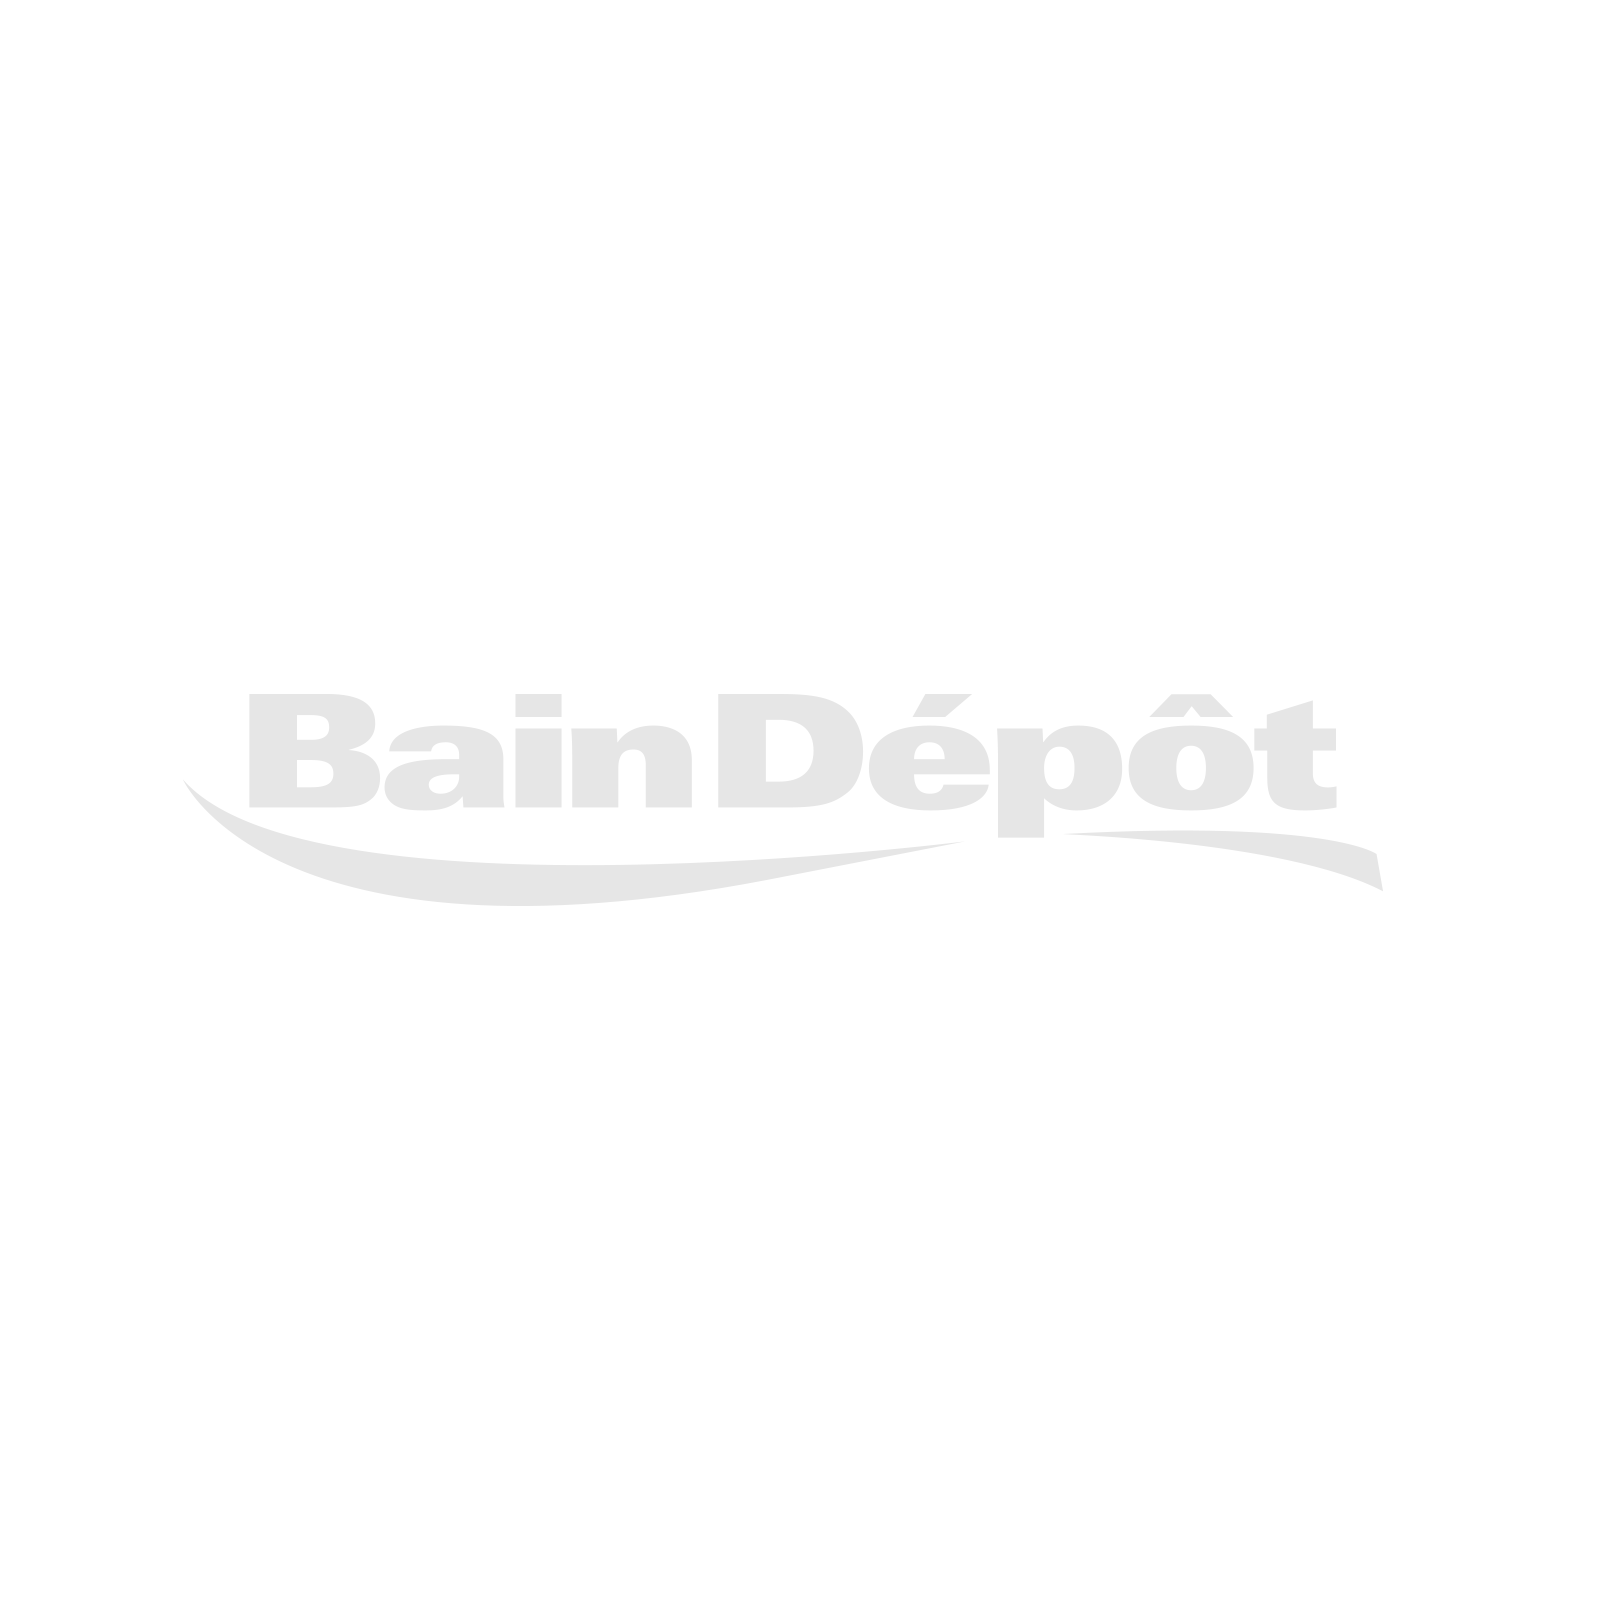 "Porcelain drop-in sink 24"" x 19"" for 4"" faucet"